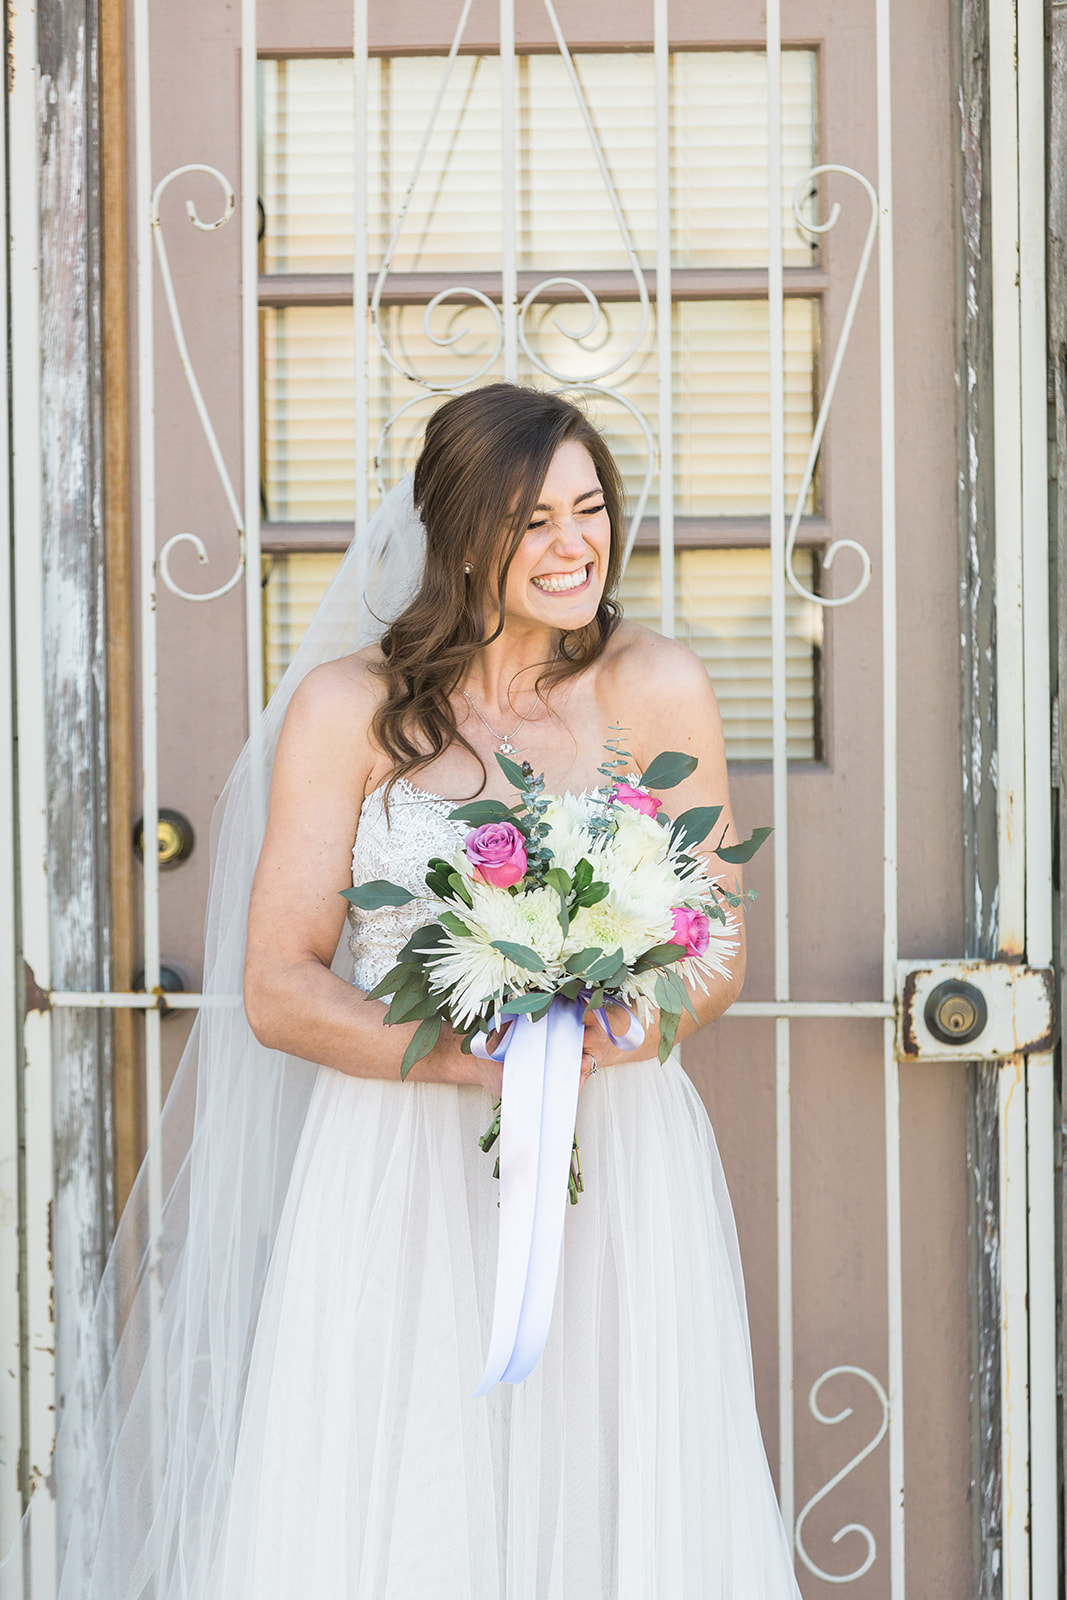 spokane wedding dress bride door